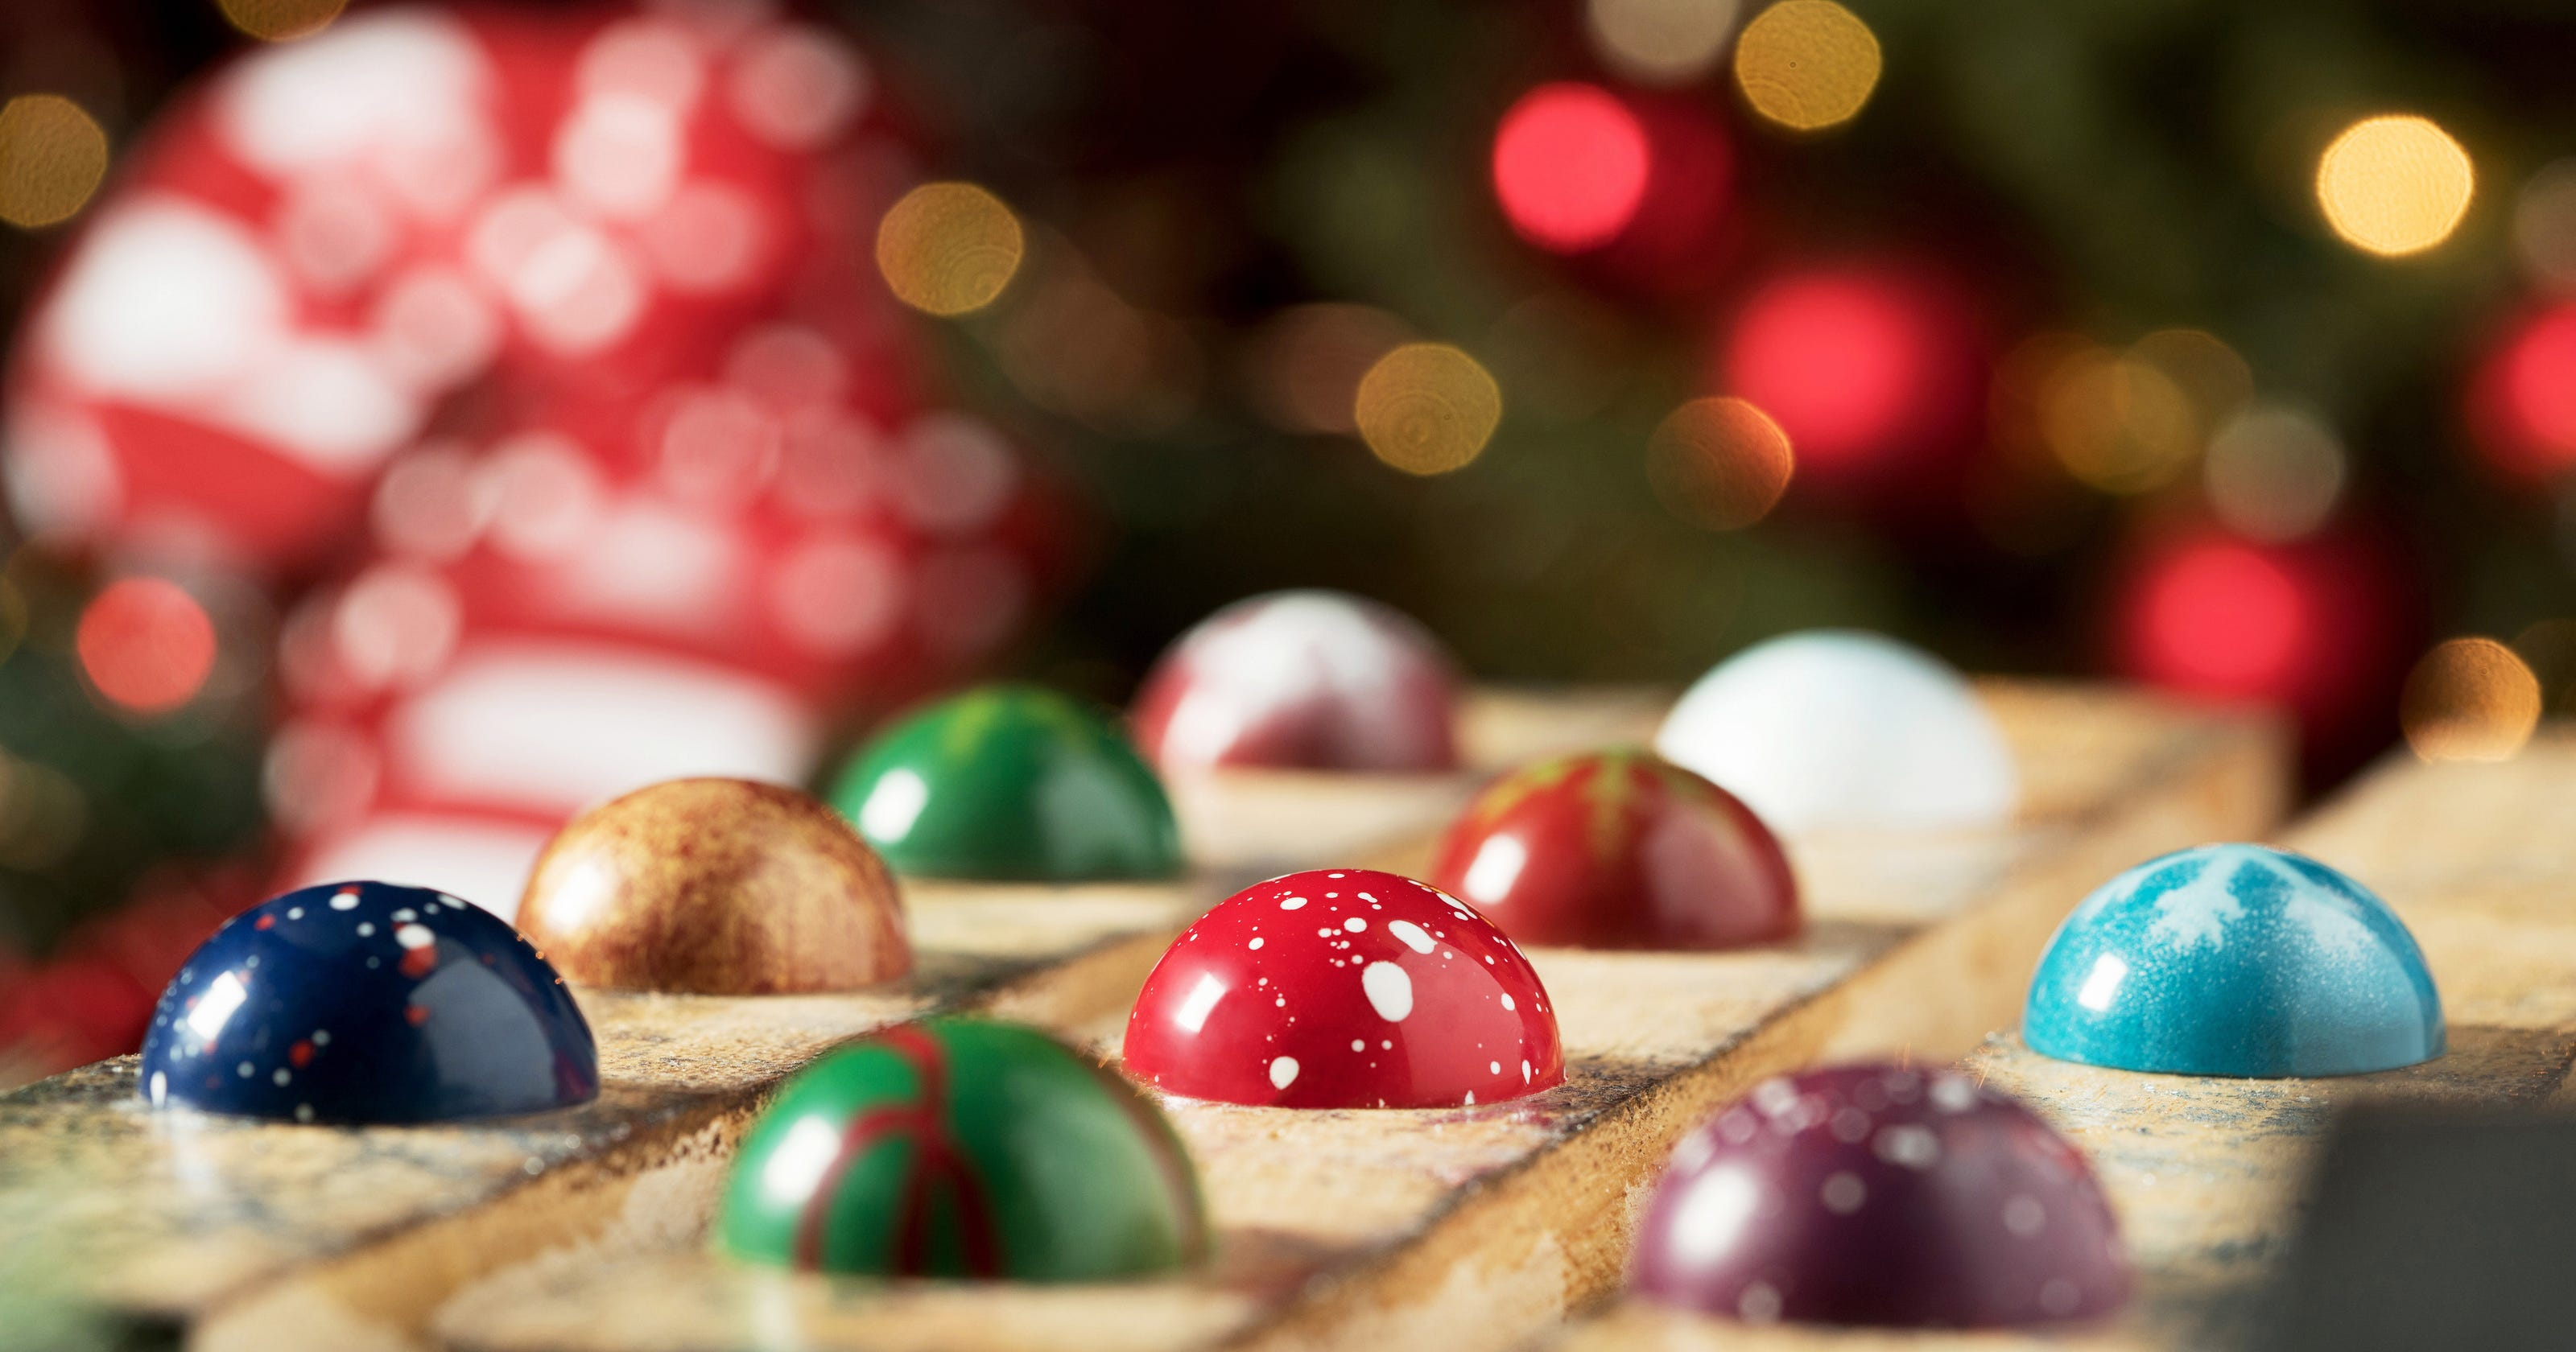 Norman Love Confections Crafts Chocolate Selection For Holiday Cheer